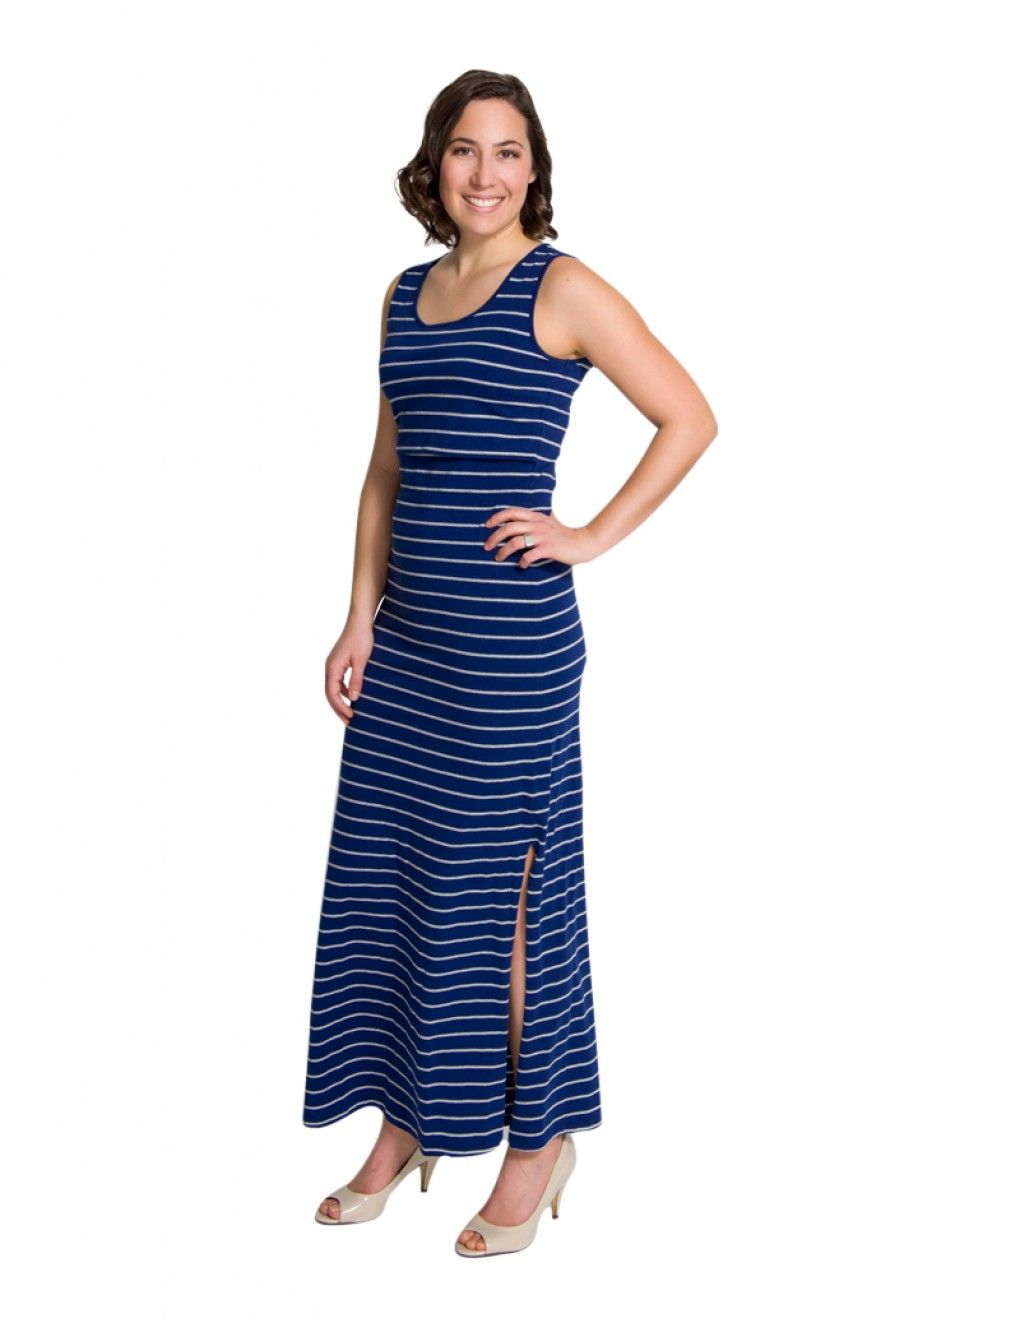 51147ac039 Want to flatter your postpartum figure and look amazing while breastfeeding  your baby  Momzelle Maxi Nursing Dress Madison is the answer!